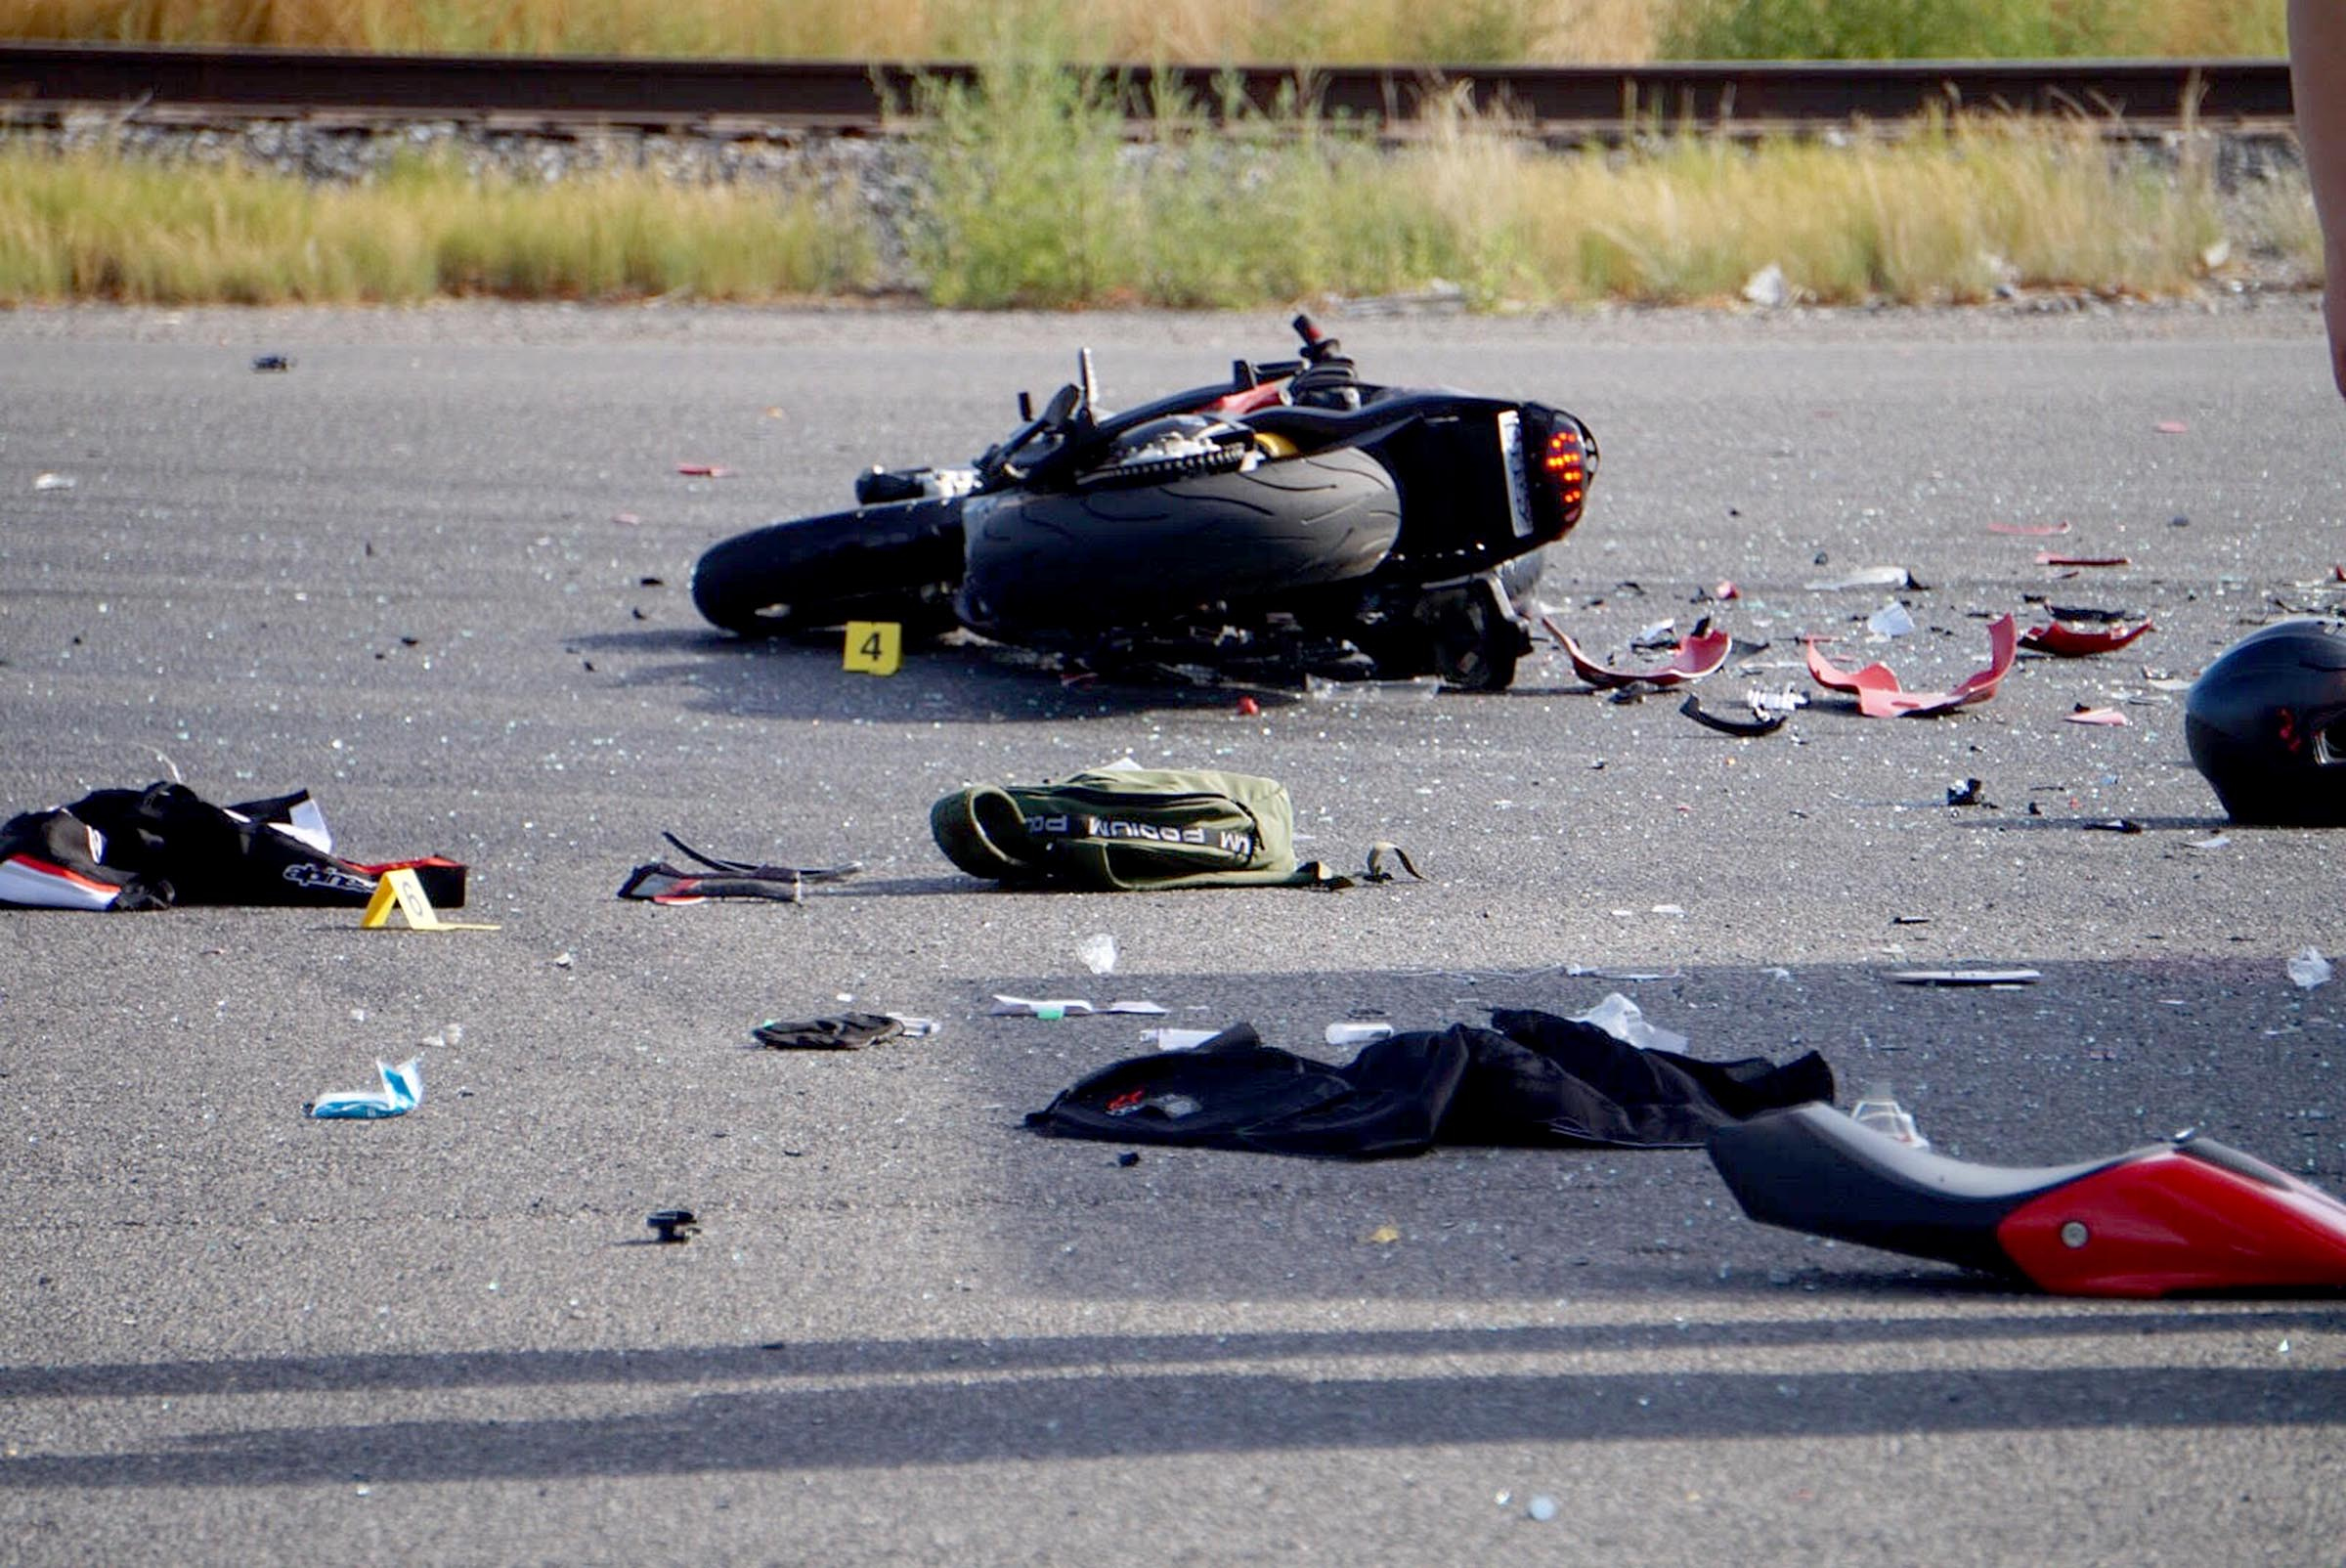 Motorcyclist killed in crash in American Fork - Deseret News